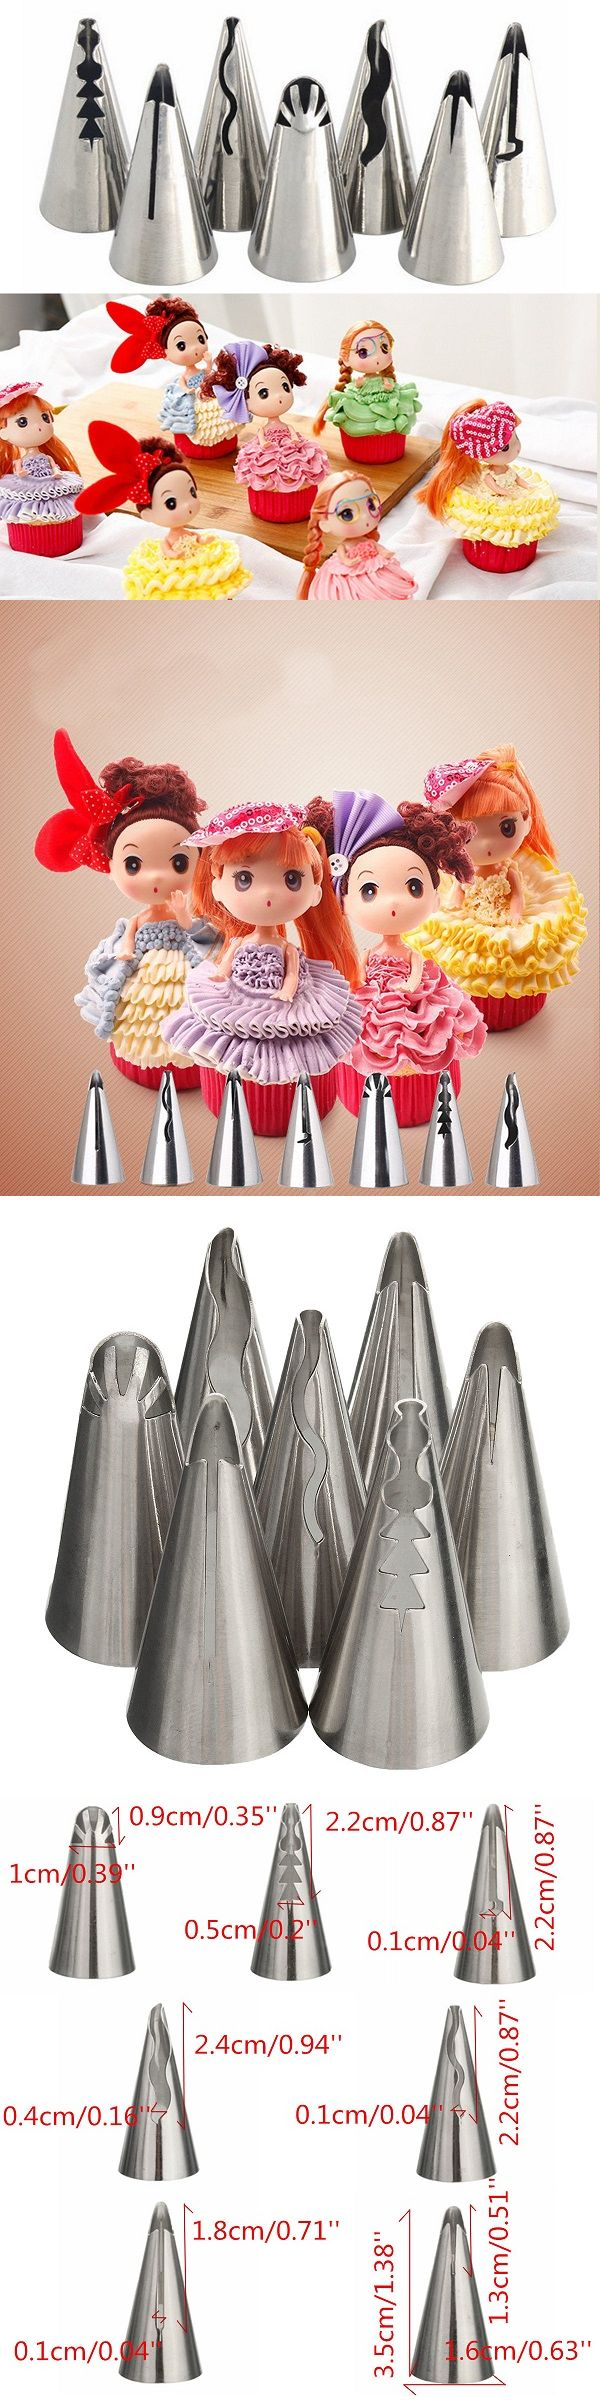 Best Cake Decorating Tools Ideas On Pinterest Icing Tips